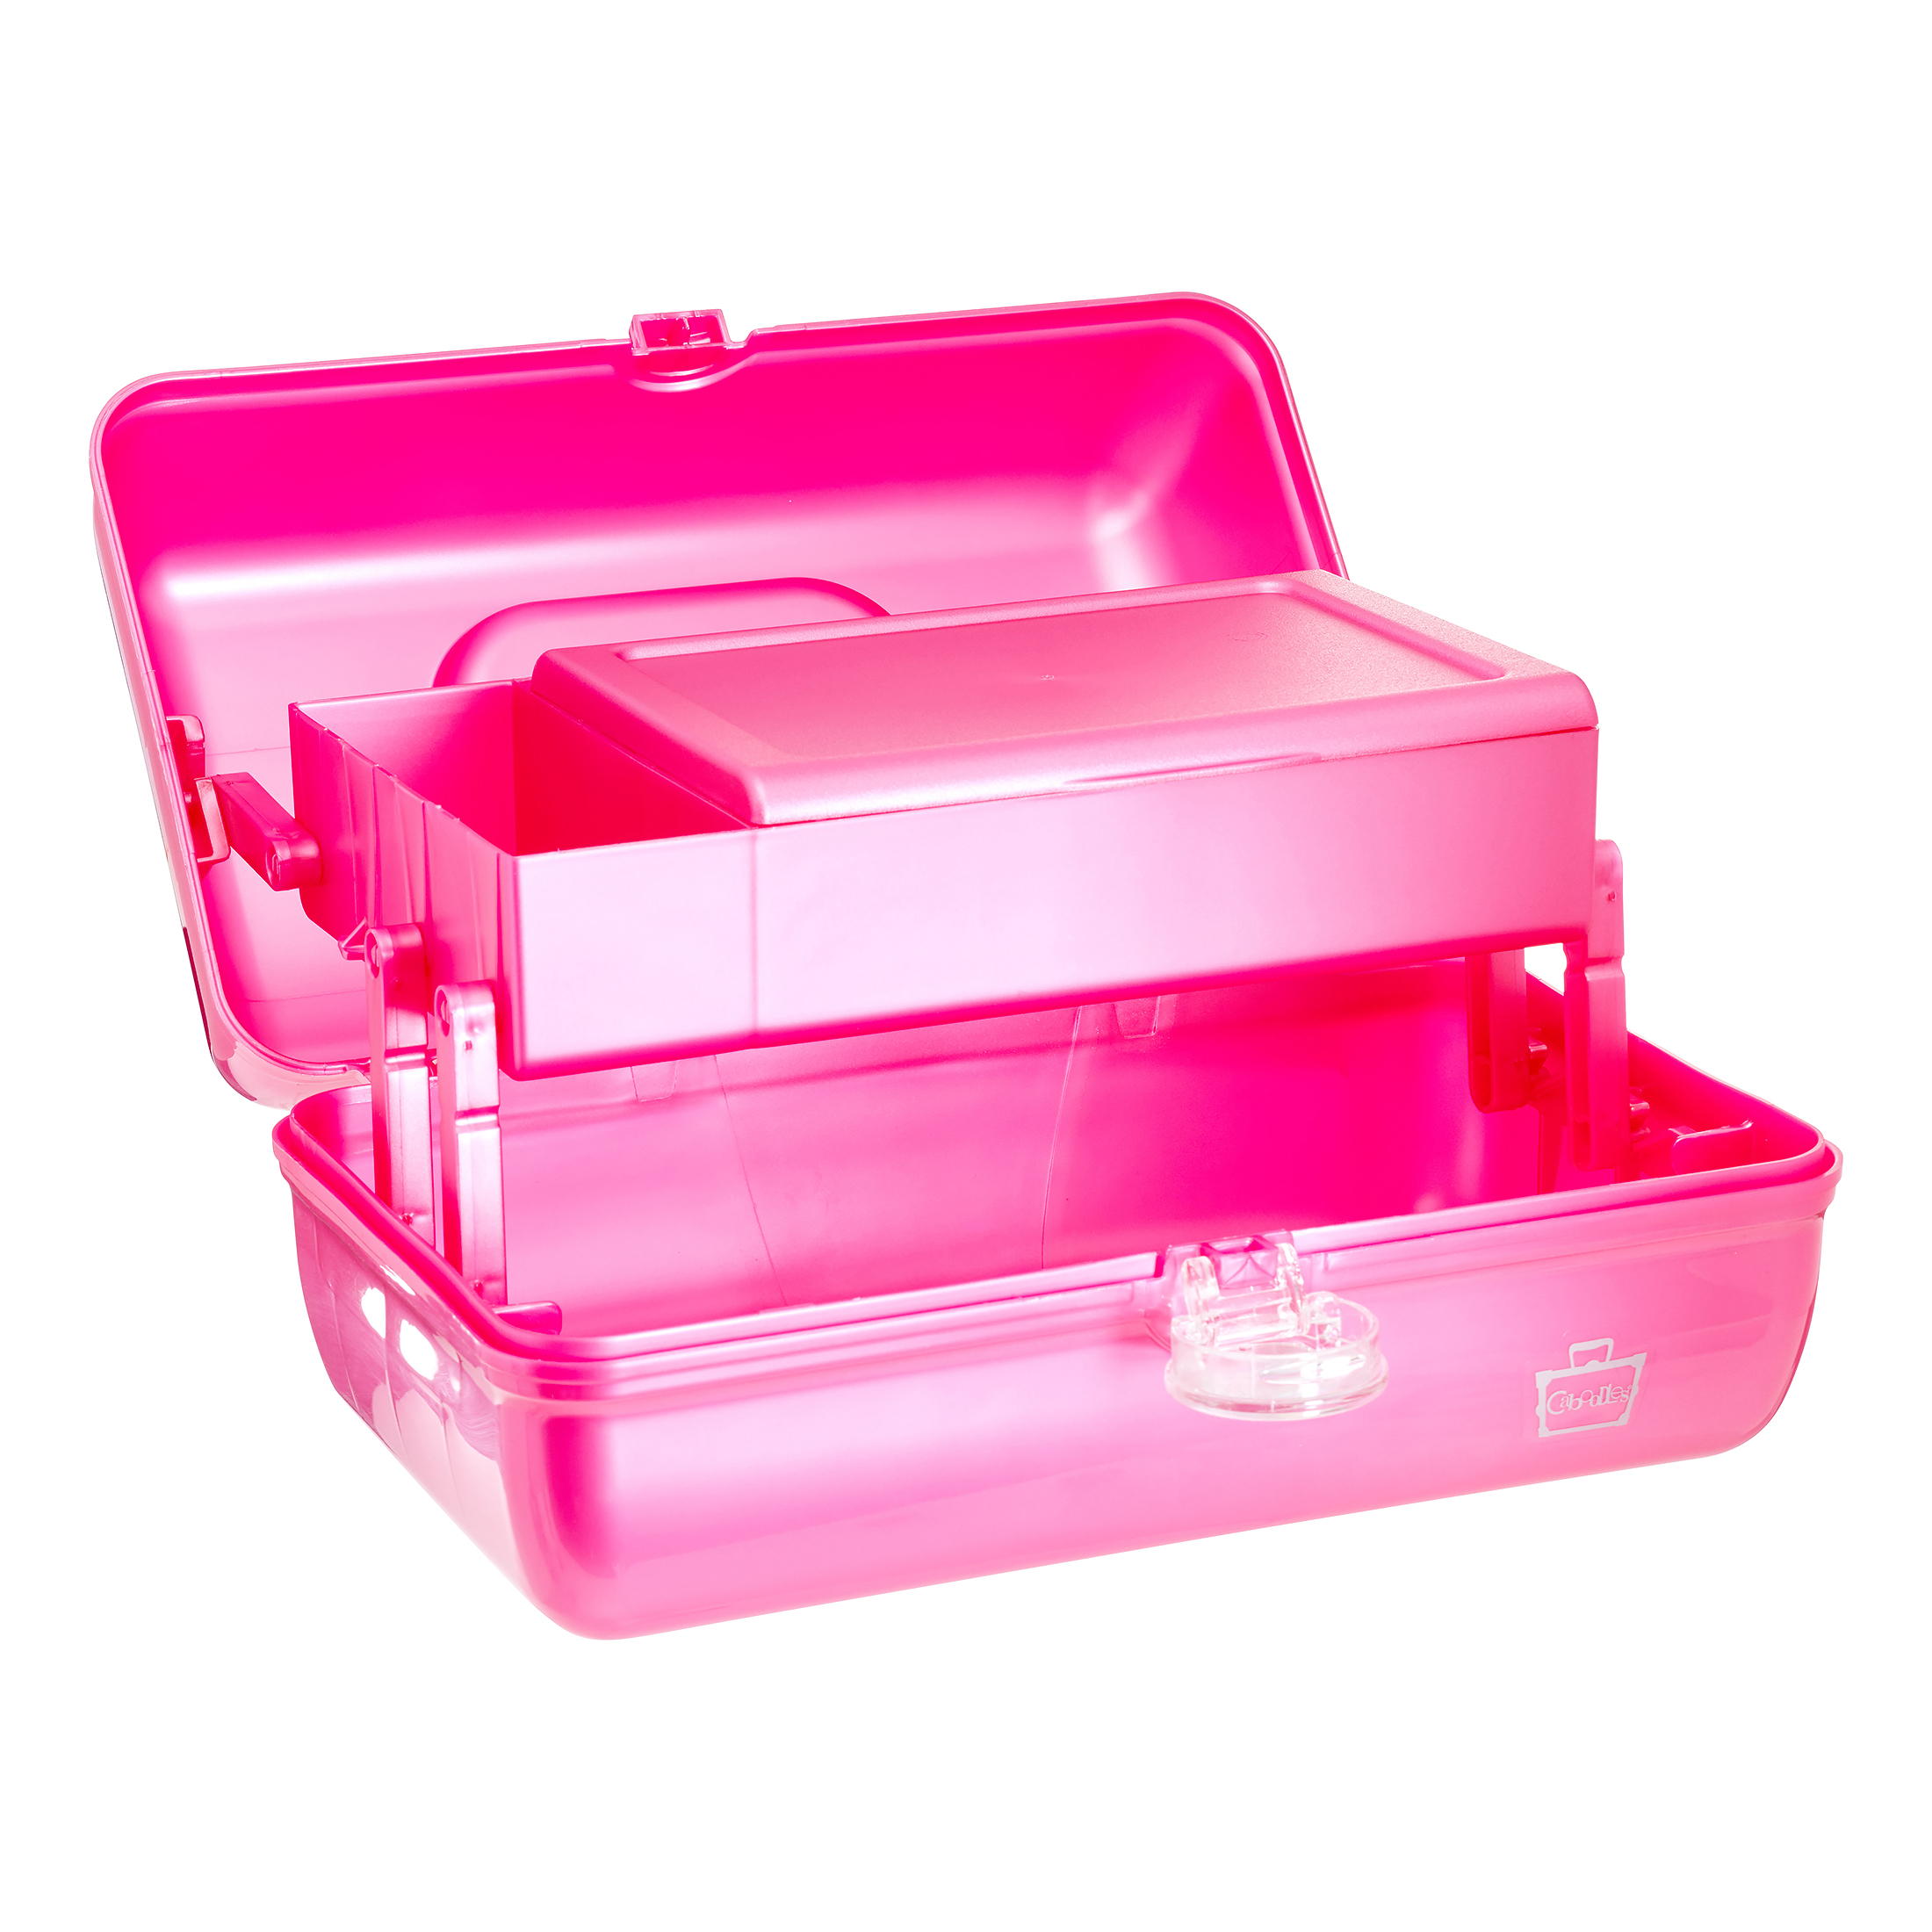 Caboodles On The Go Girl Classic Makeup Case